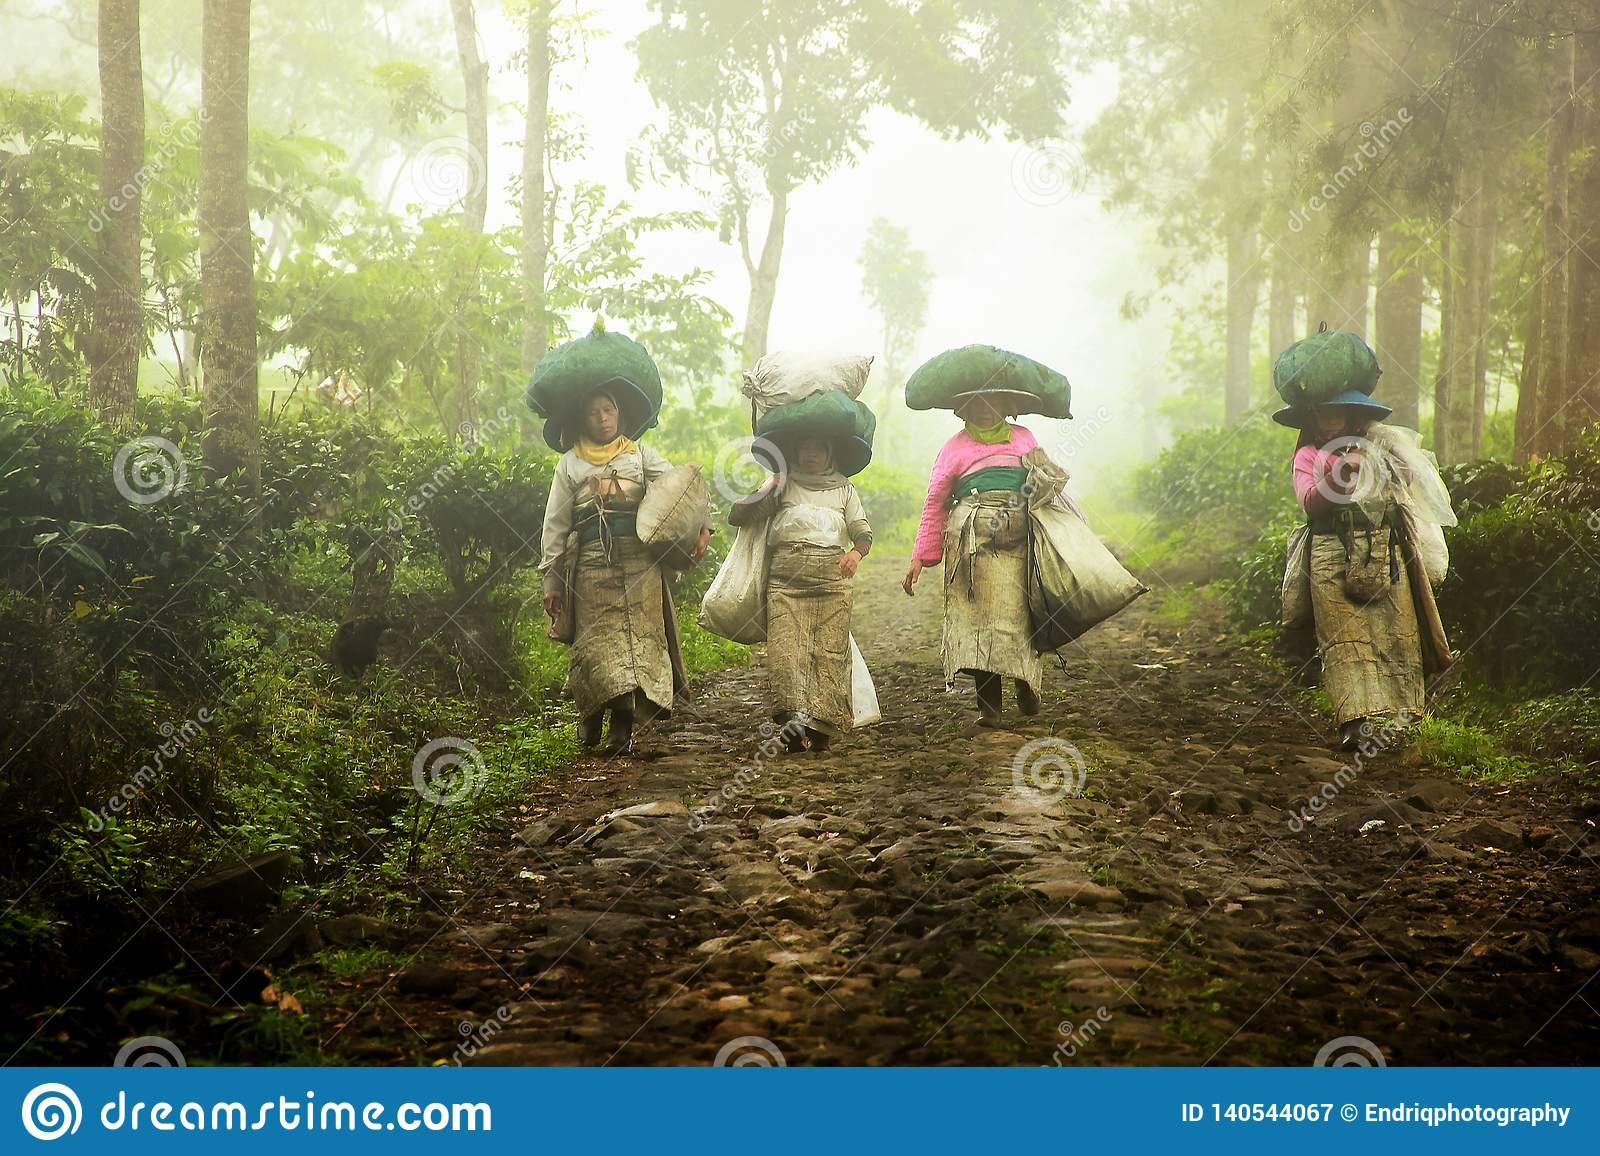 The tea picking farmers came home after taking tea leaves in the fields. Wonosari Lawang East Java January 21, 2019